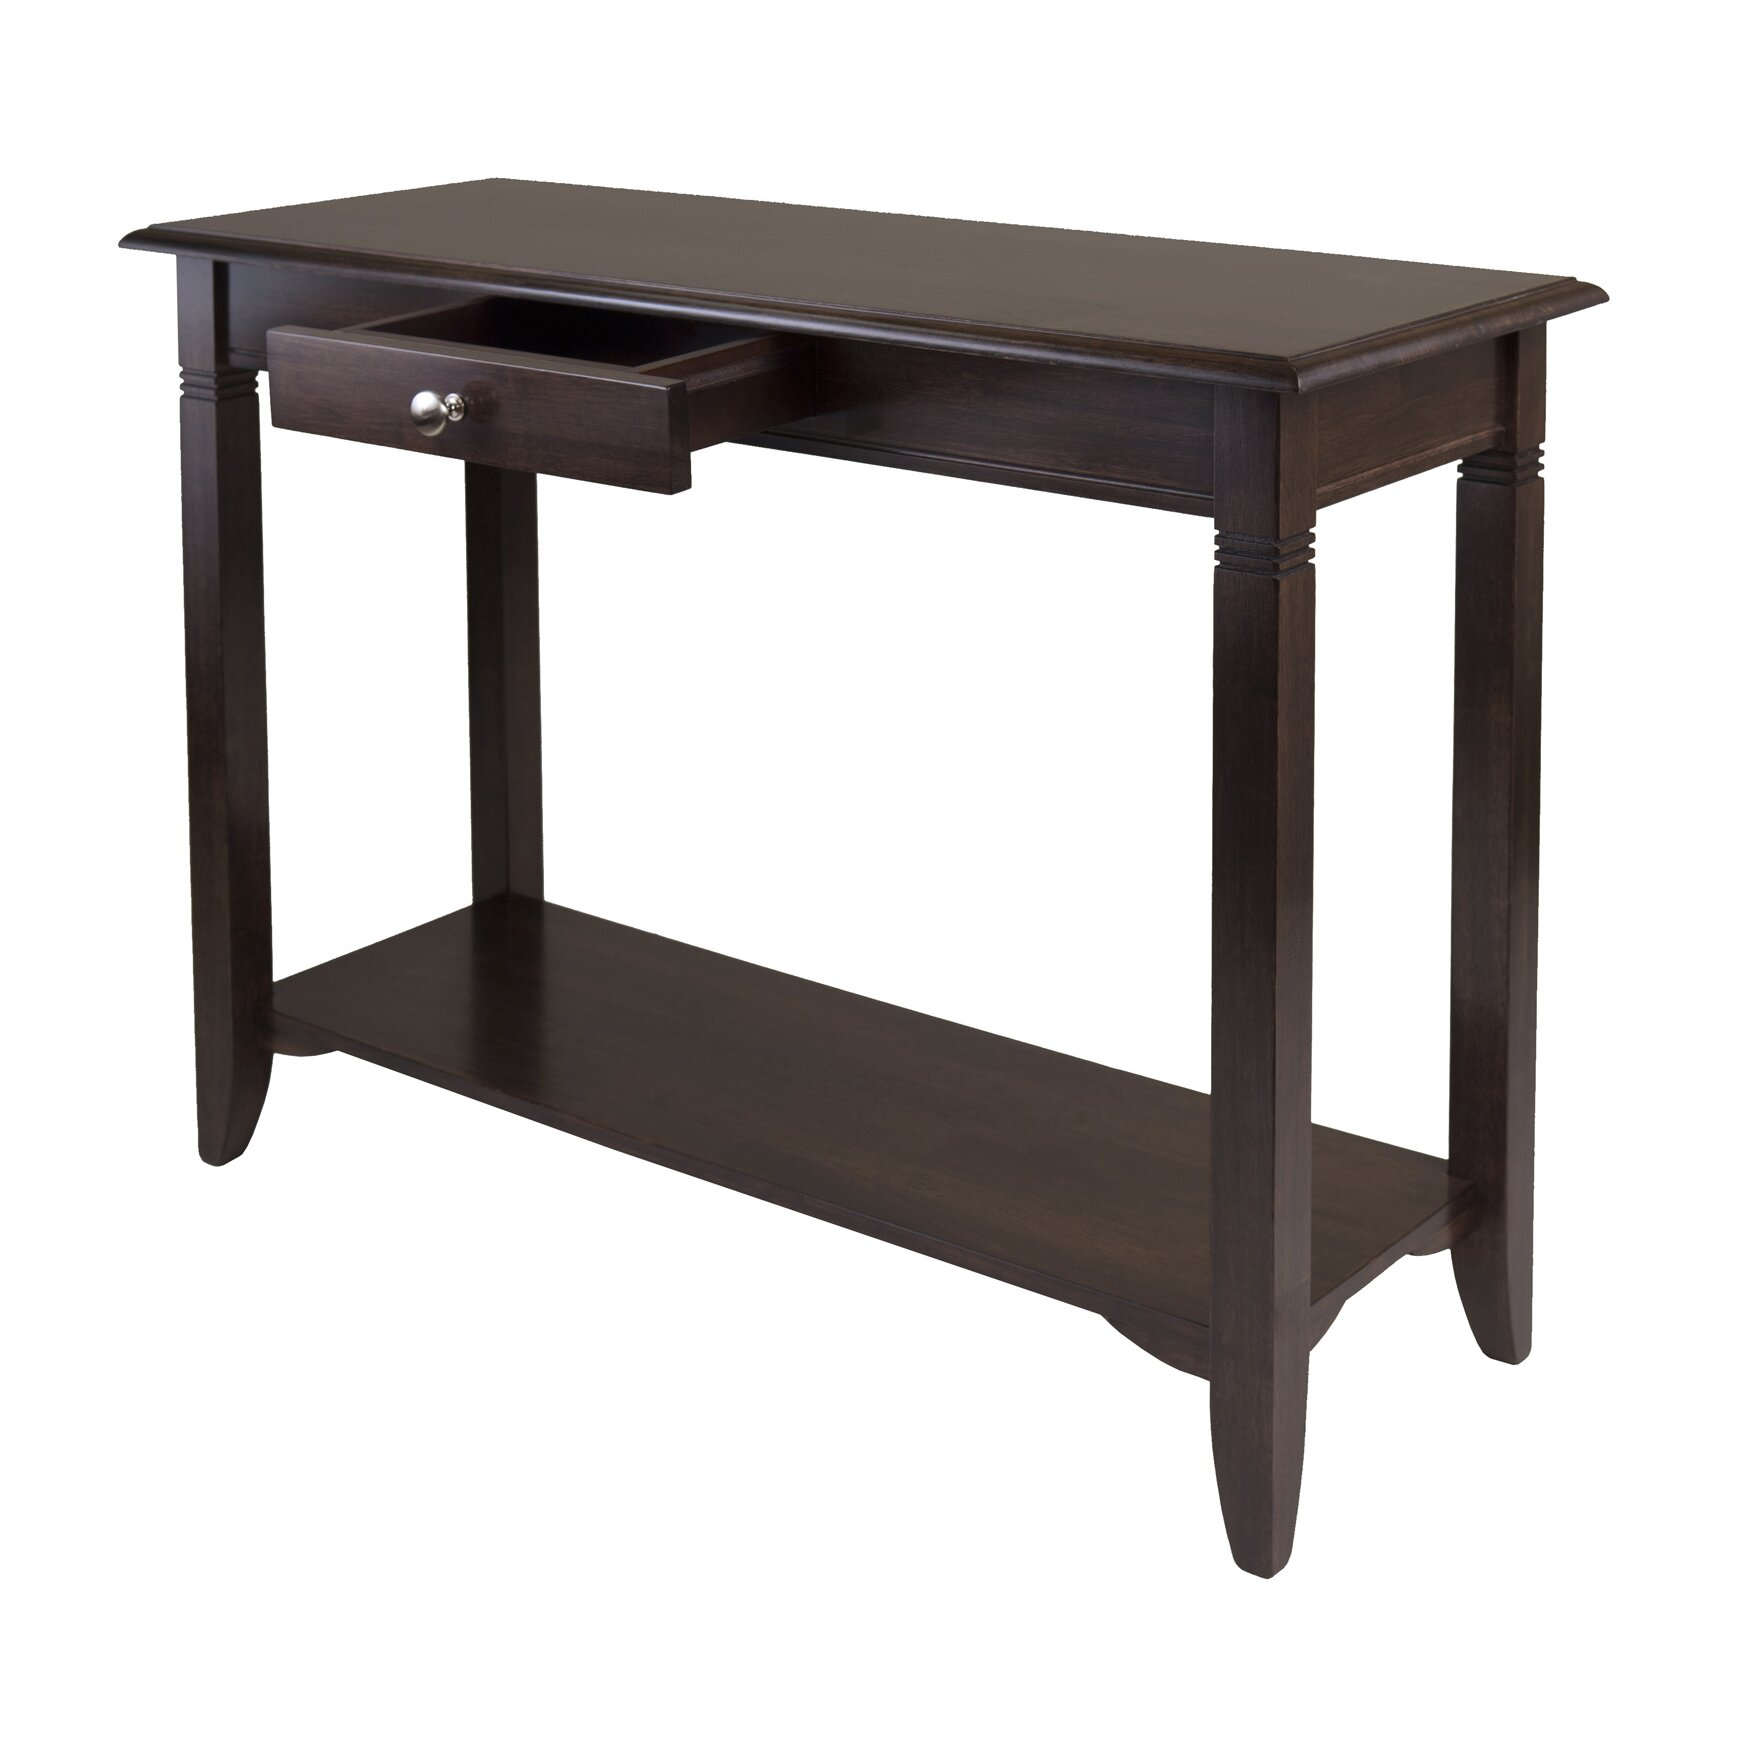 Charlton home beckwood console table reviews for Furniture table design examples